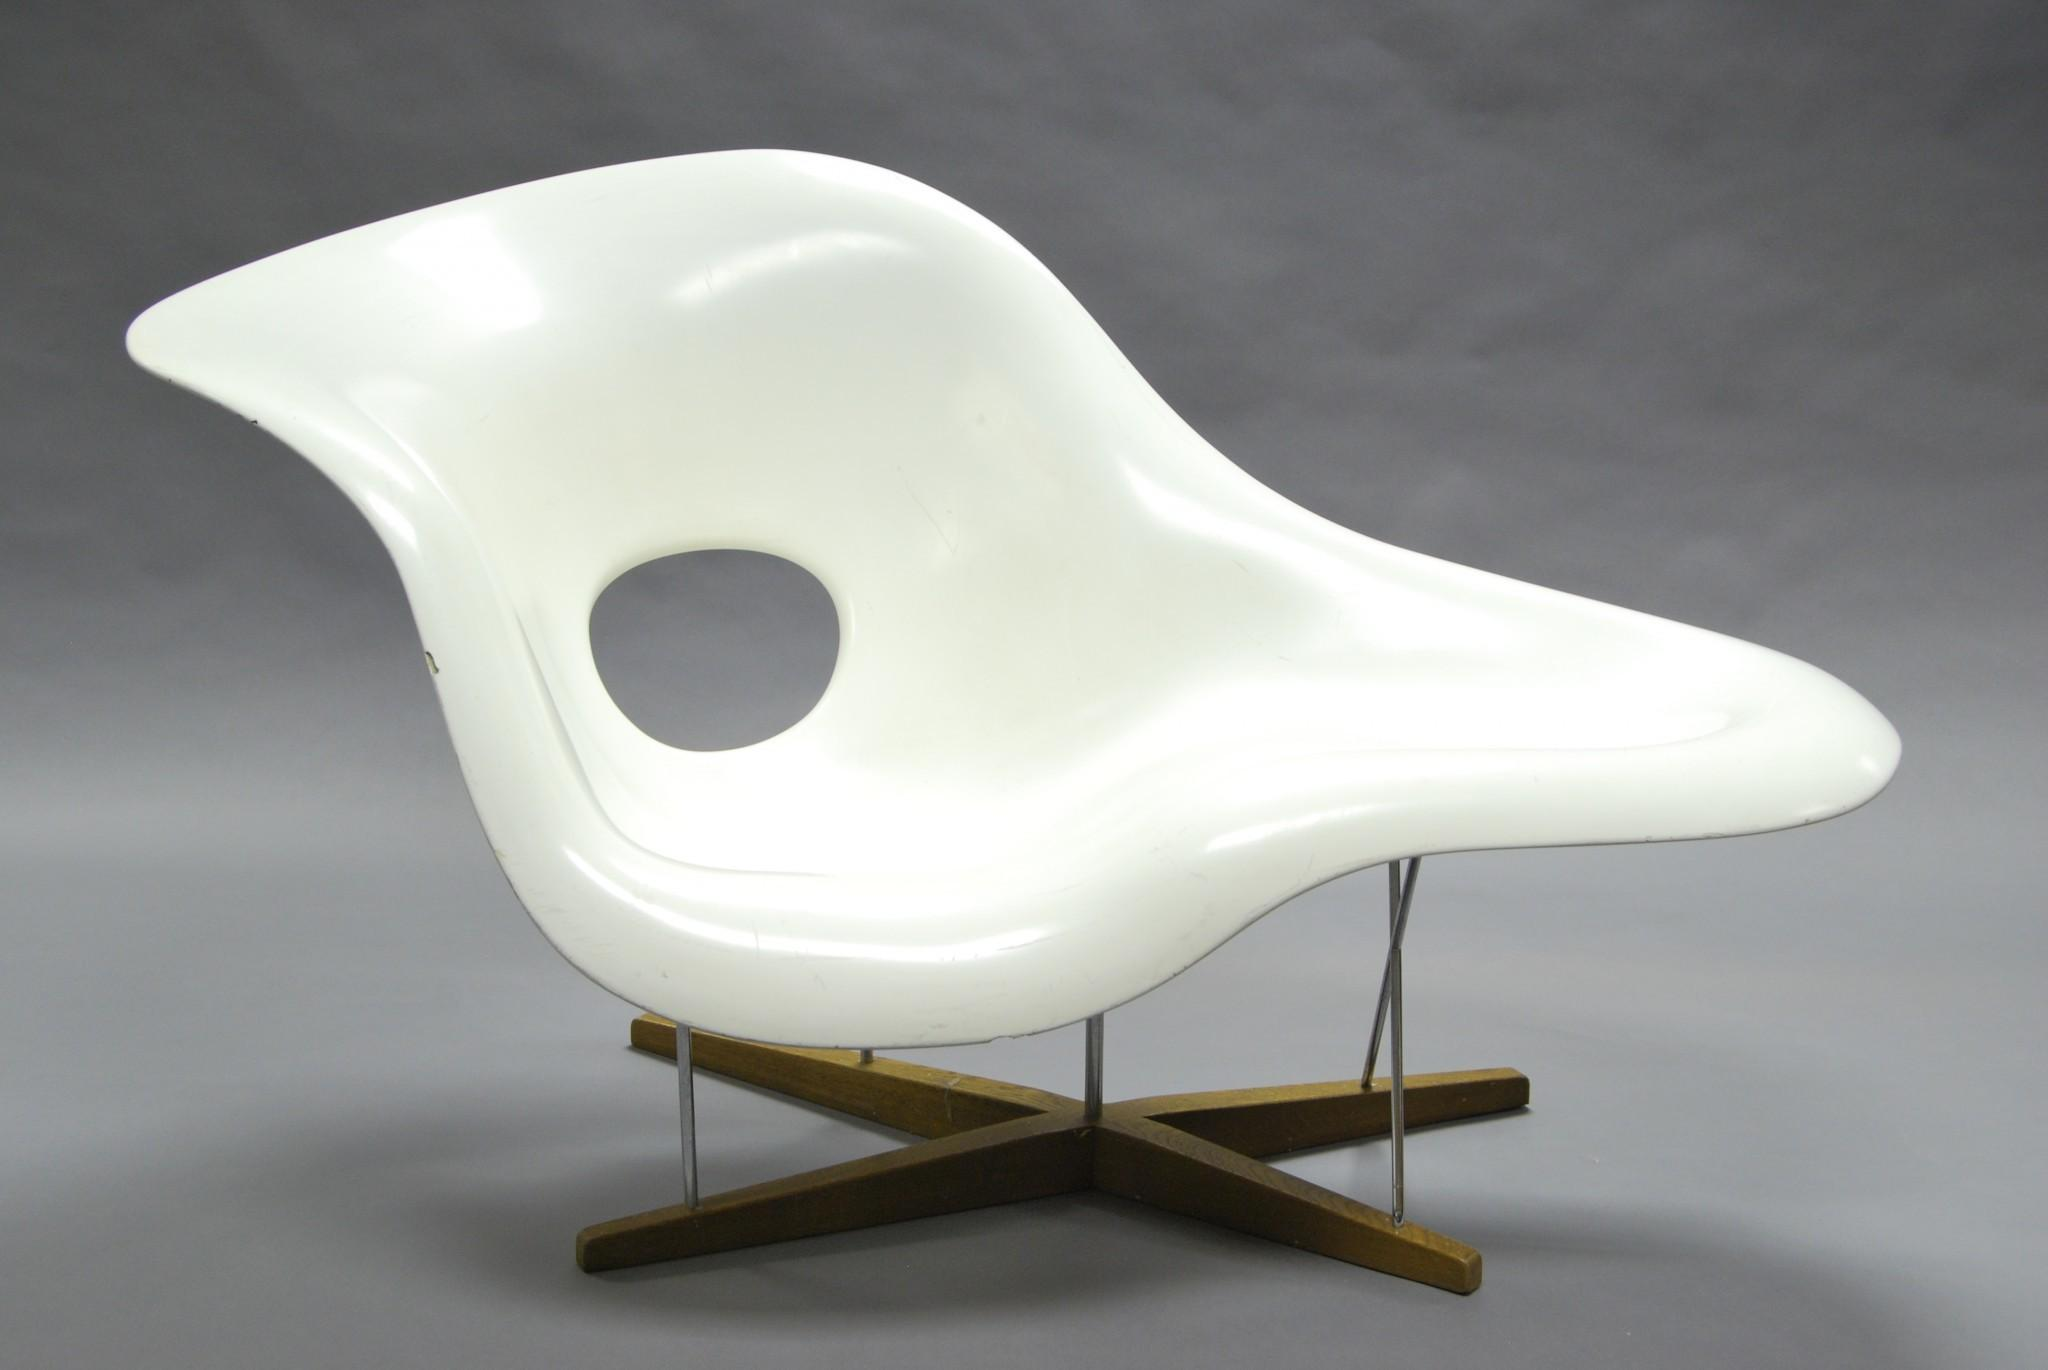 Iconic Modern Design Furniture Under Hammer